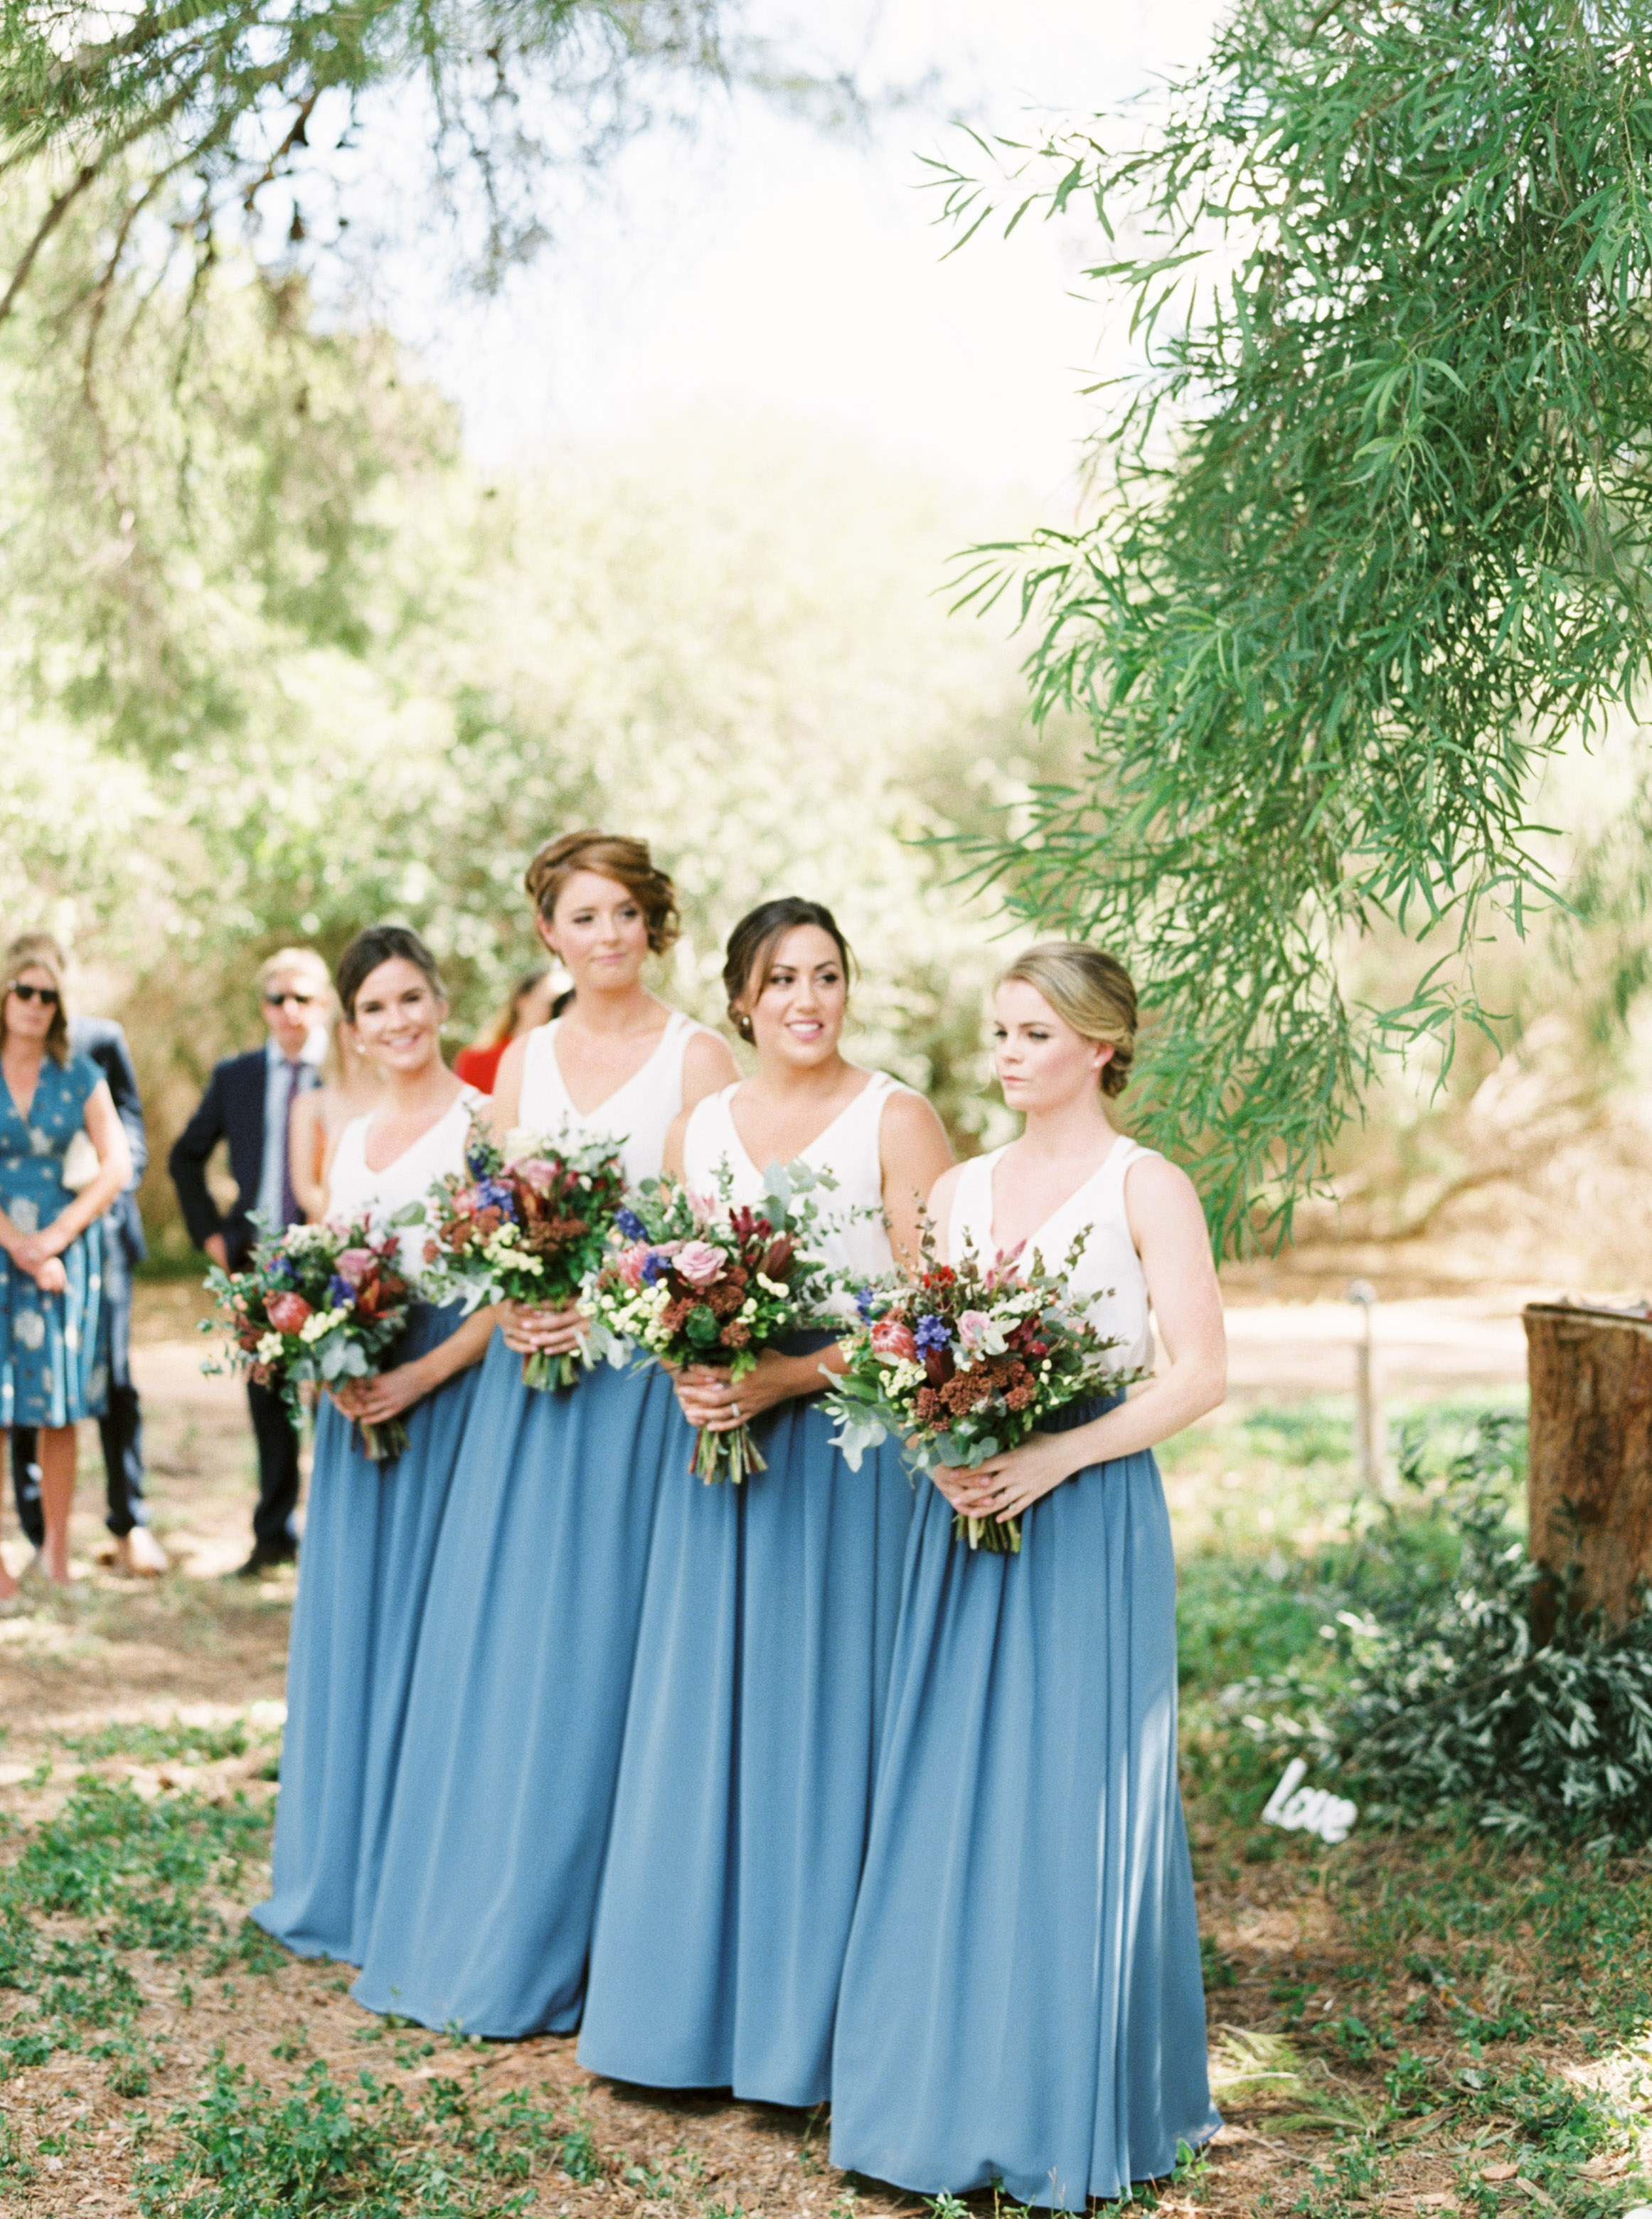 00020- Fine Art Film NSW Mudgee Wedding Photographer Sheri McMahon.jpg